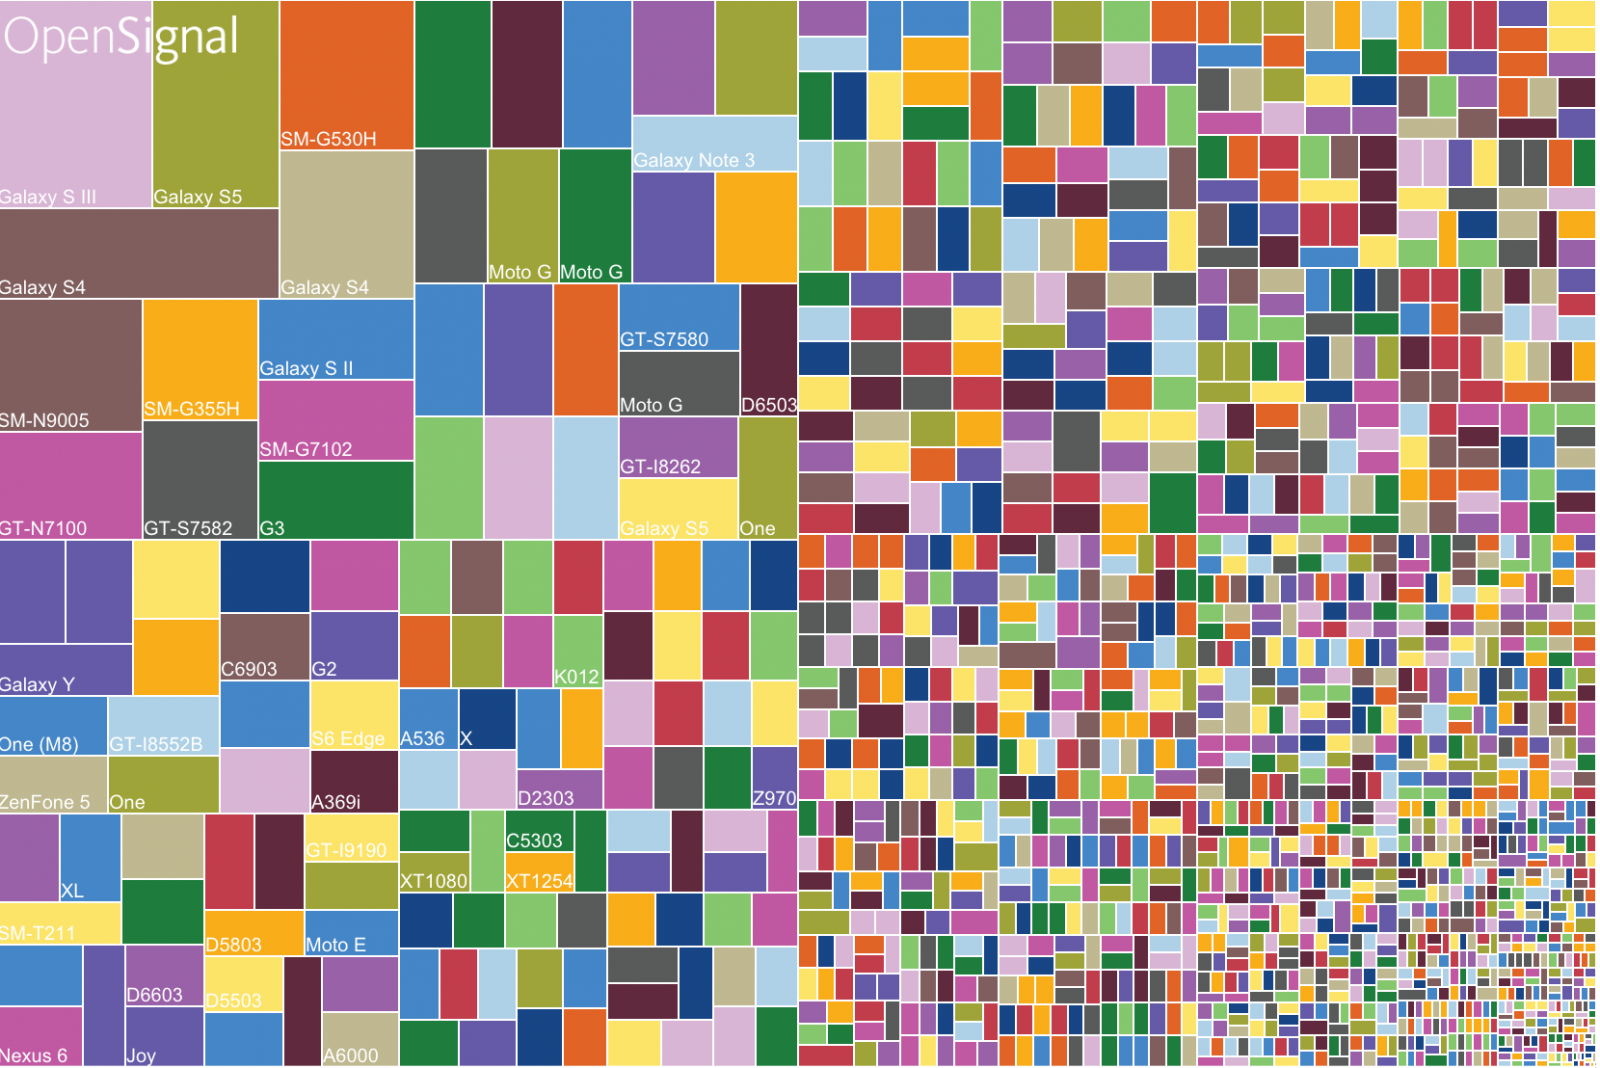 Android fragmentation continues to grow